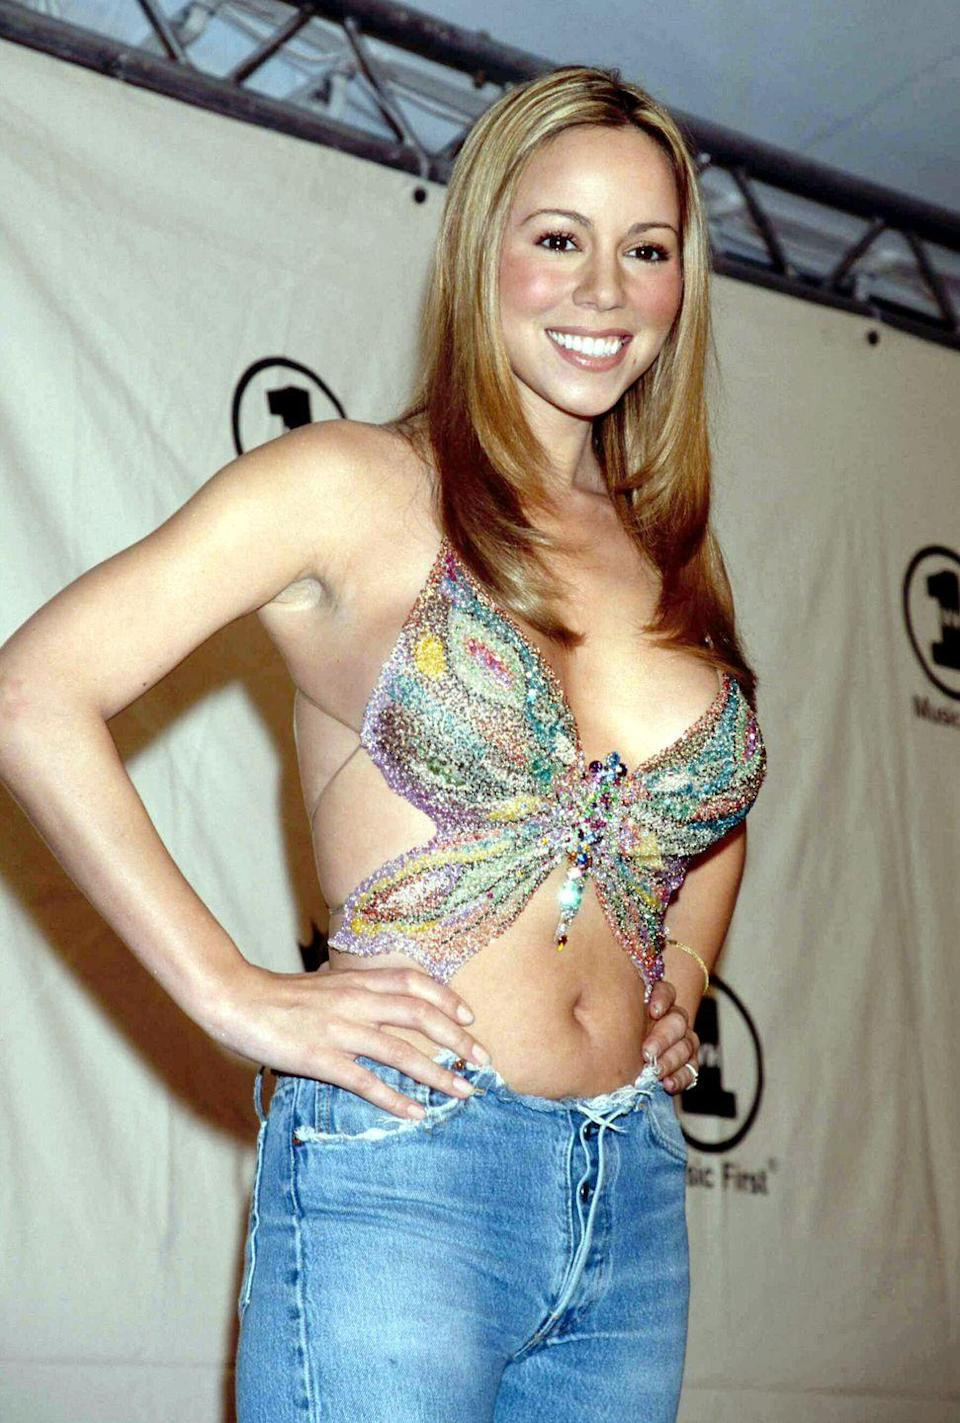 <p>Between the late '90s and early 2000s, butterflies were all over the fashion industry and beyond. Mariah Carrey's 1997 album certainly helped with that. From tops to hair clips to trousers, the silhouette and patterns associated with the winged insect were fluttering all over. </p>